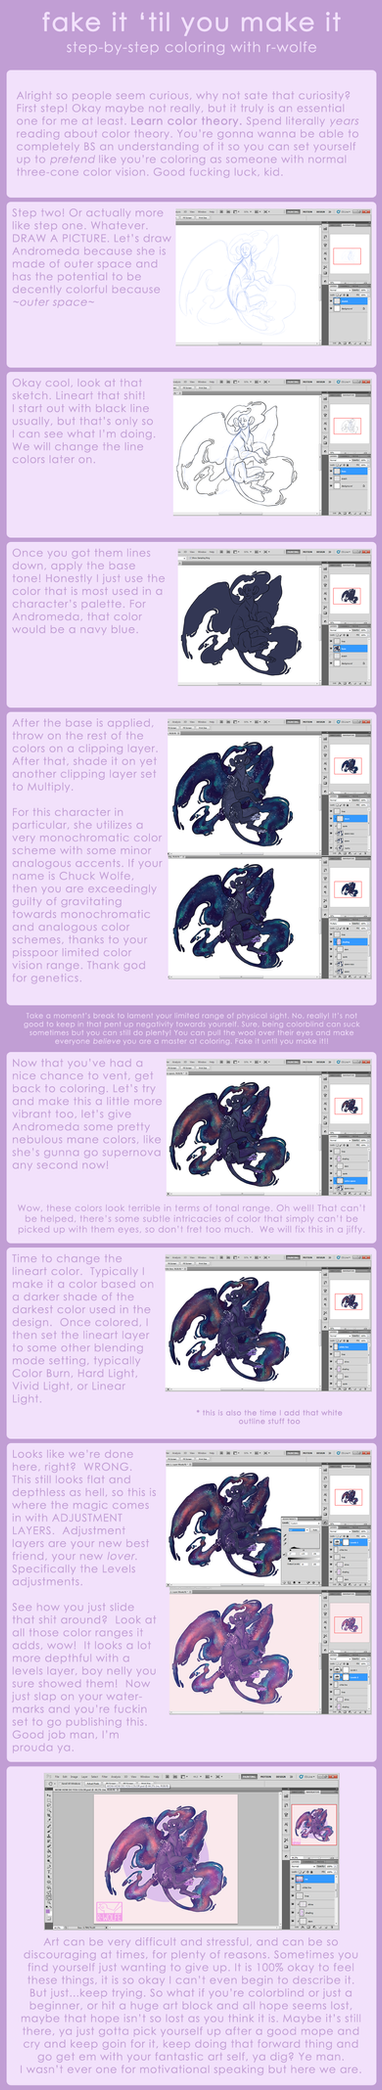 fake it 'til you make it! a coloring guide by VCR-WOLFE